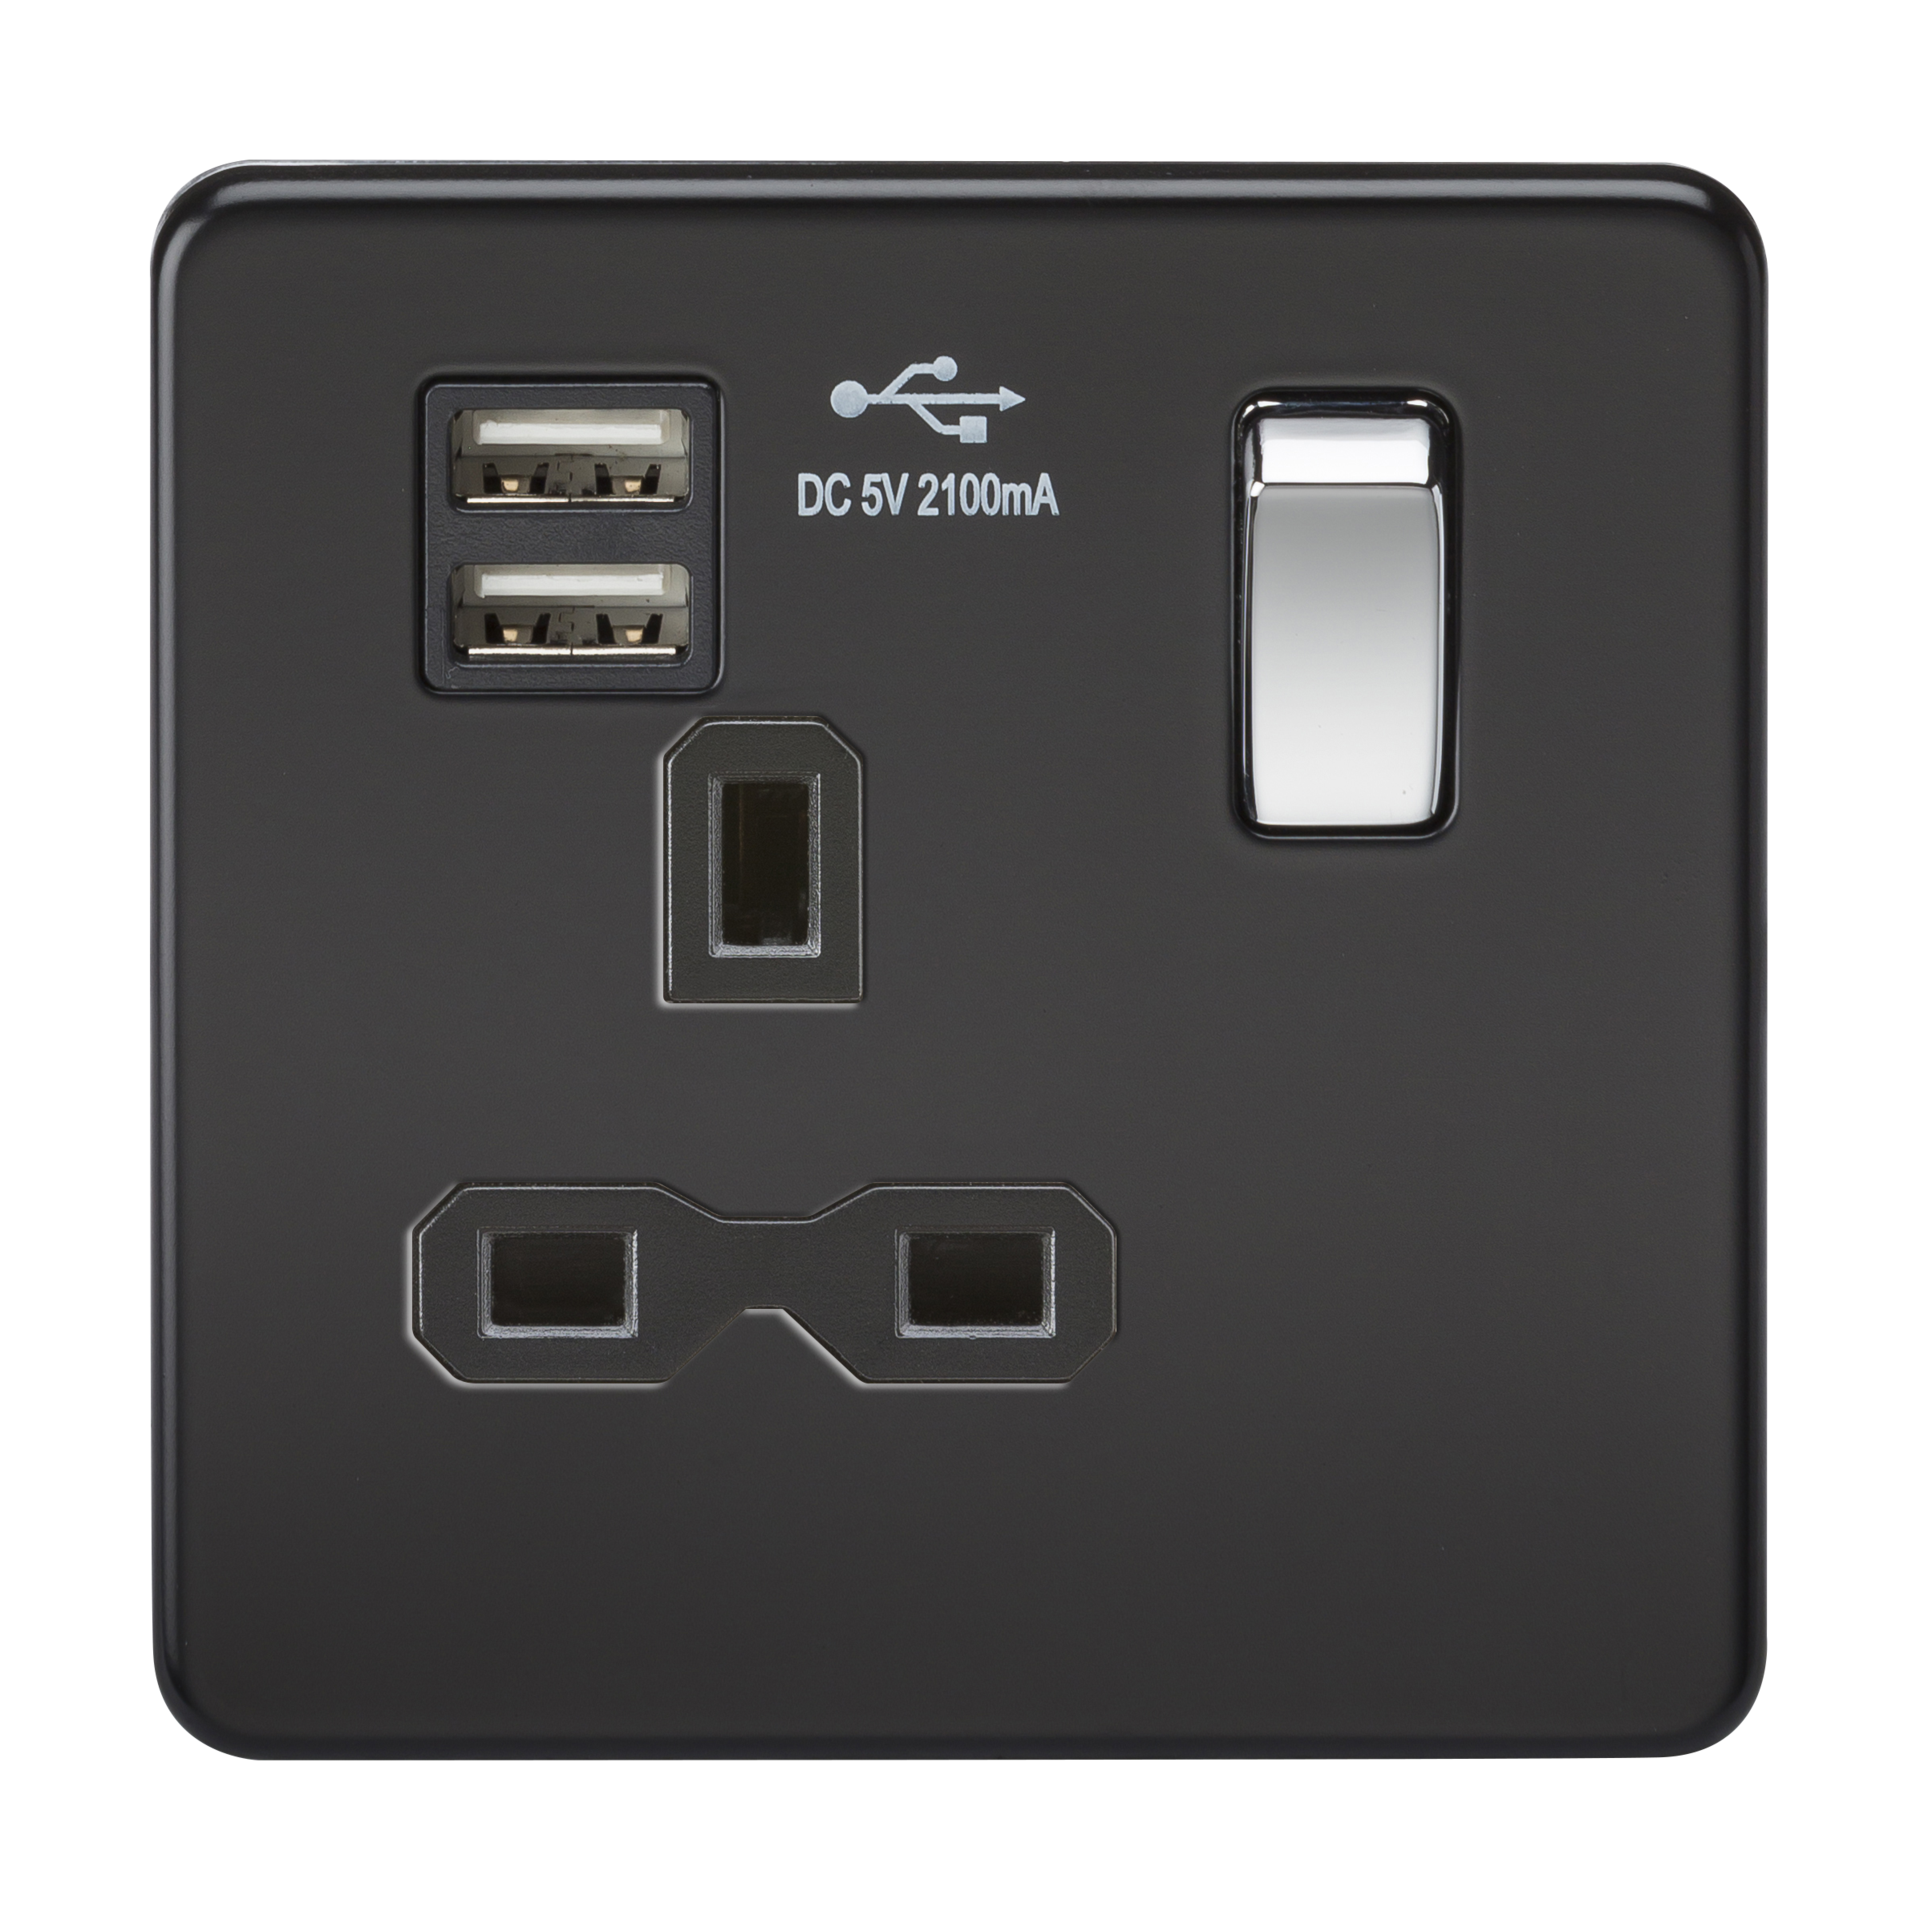 SCREWLESS 13A 1G SWITCHED SOCKET WITH DUAL USB CHARGER - MATT BLACK W/CHROME ROCKER